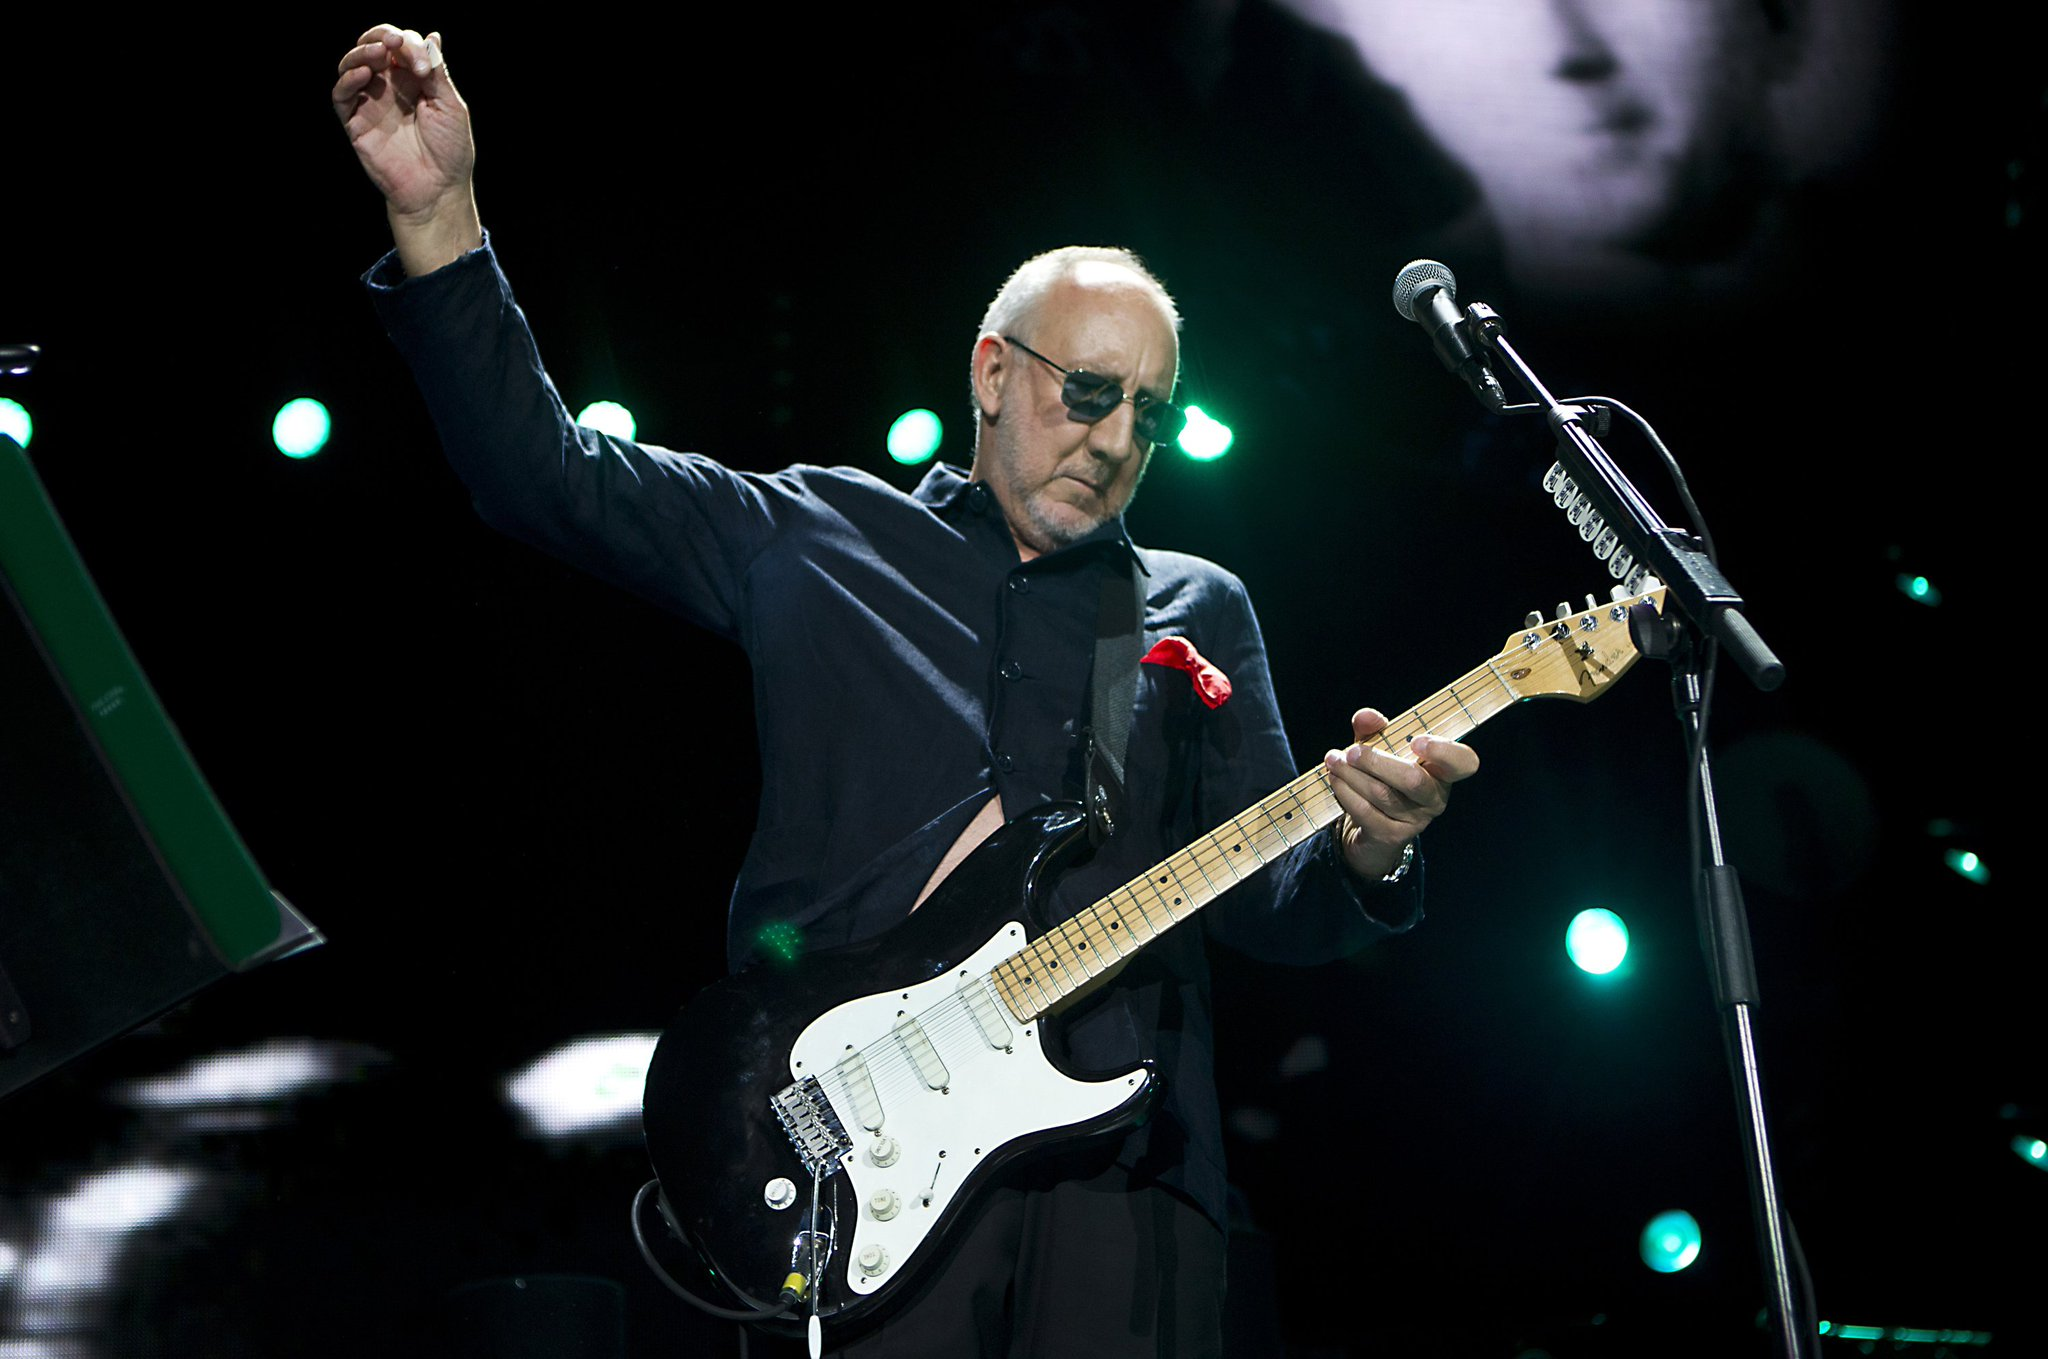 Happy 72nd birthday to Pete Townshend of The Who!